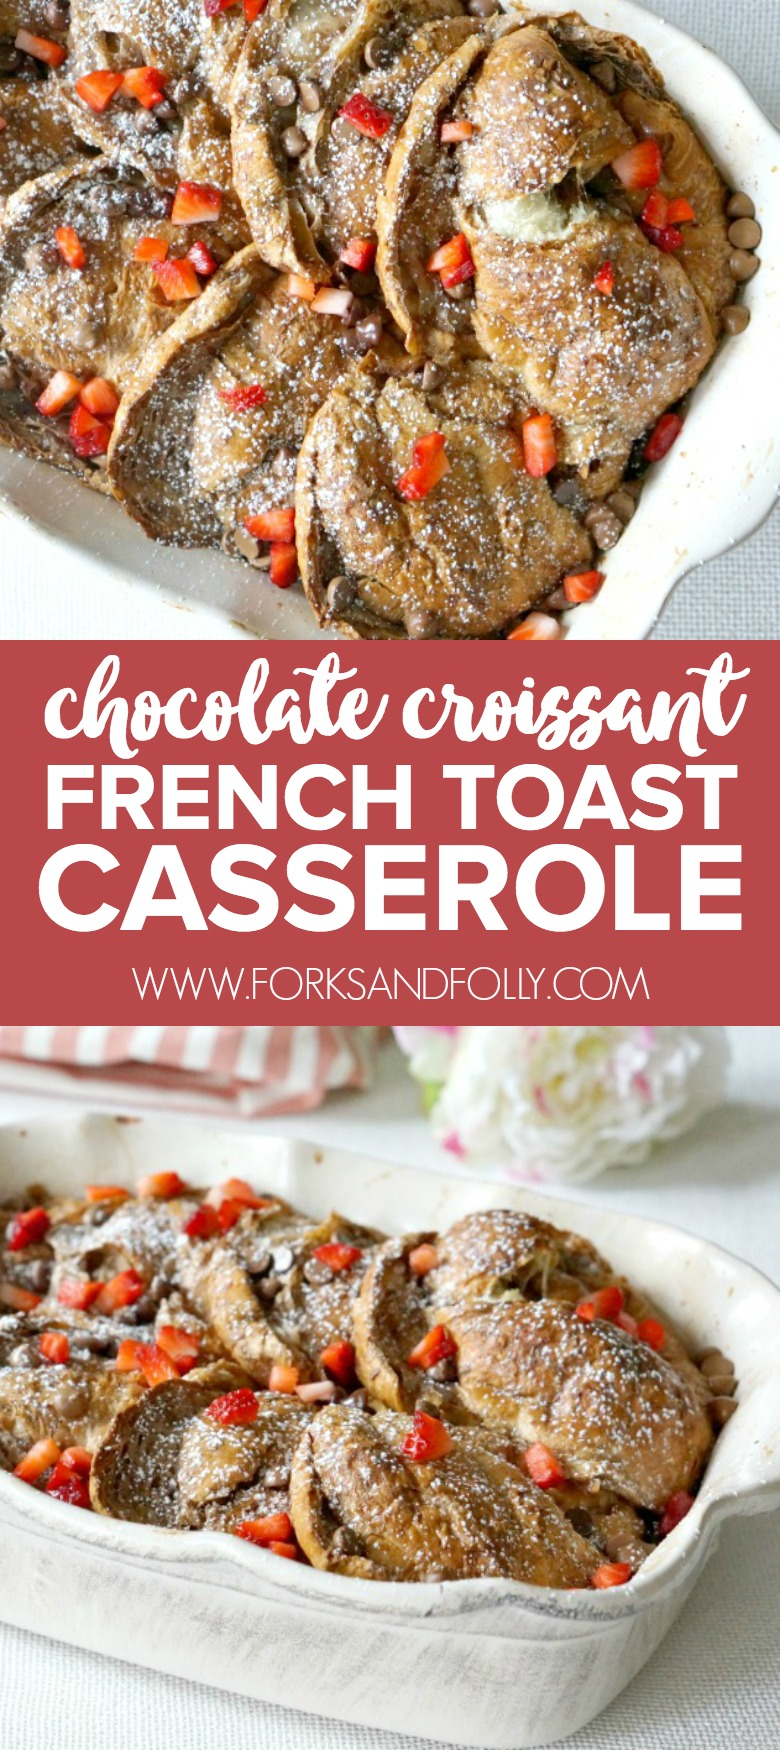 Chocolate caramel sauce and croissants baked up french toast style!! This perfect croissant french toast bake is the perfect spring brunch casserole.